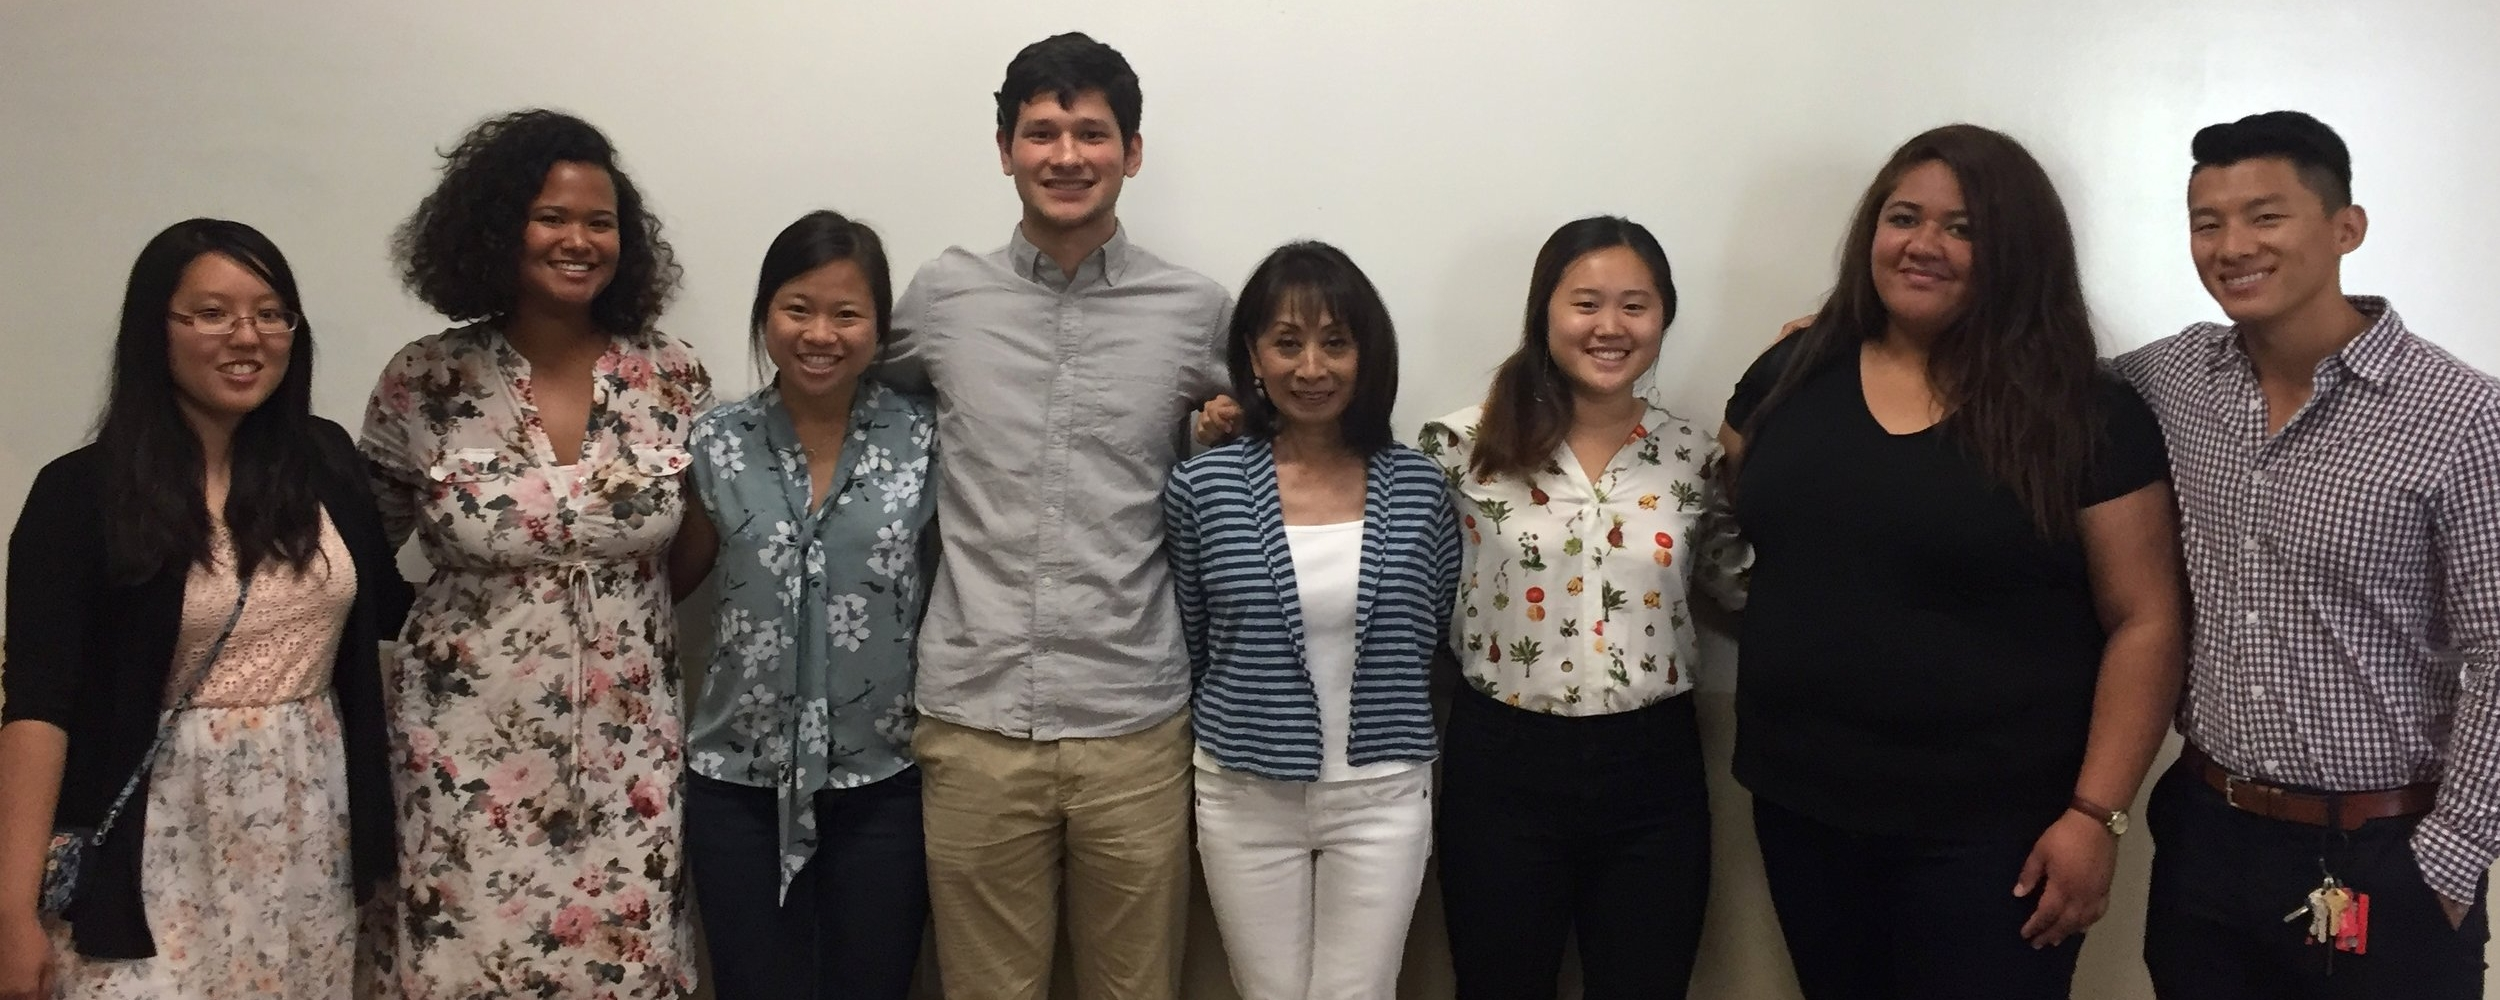 - With long-time LEAP trainer, Vanna Novak, on public speaking.Left to Right: Lena Pham, Susana Abdurahman, Angela Yip, Joshua Jiang, Vanna Novak, Alison Choi, Louisa Sasi, and Kevin Hang